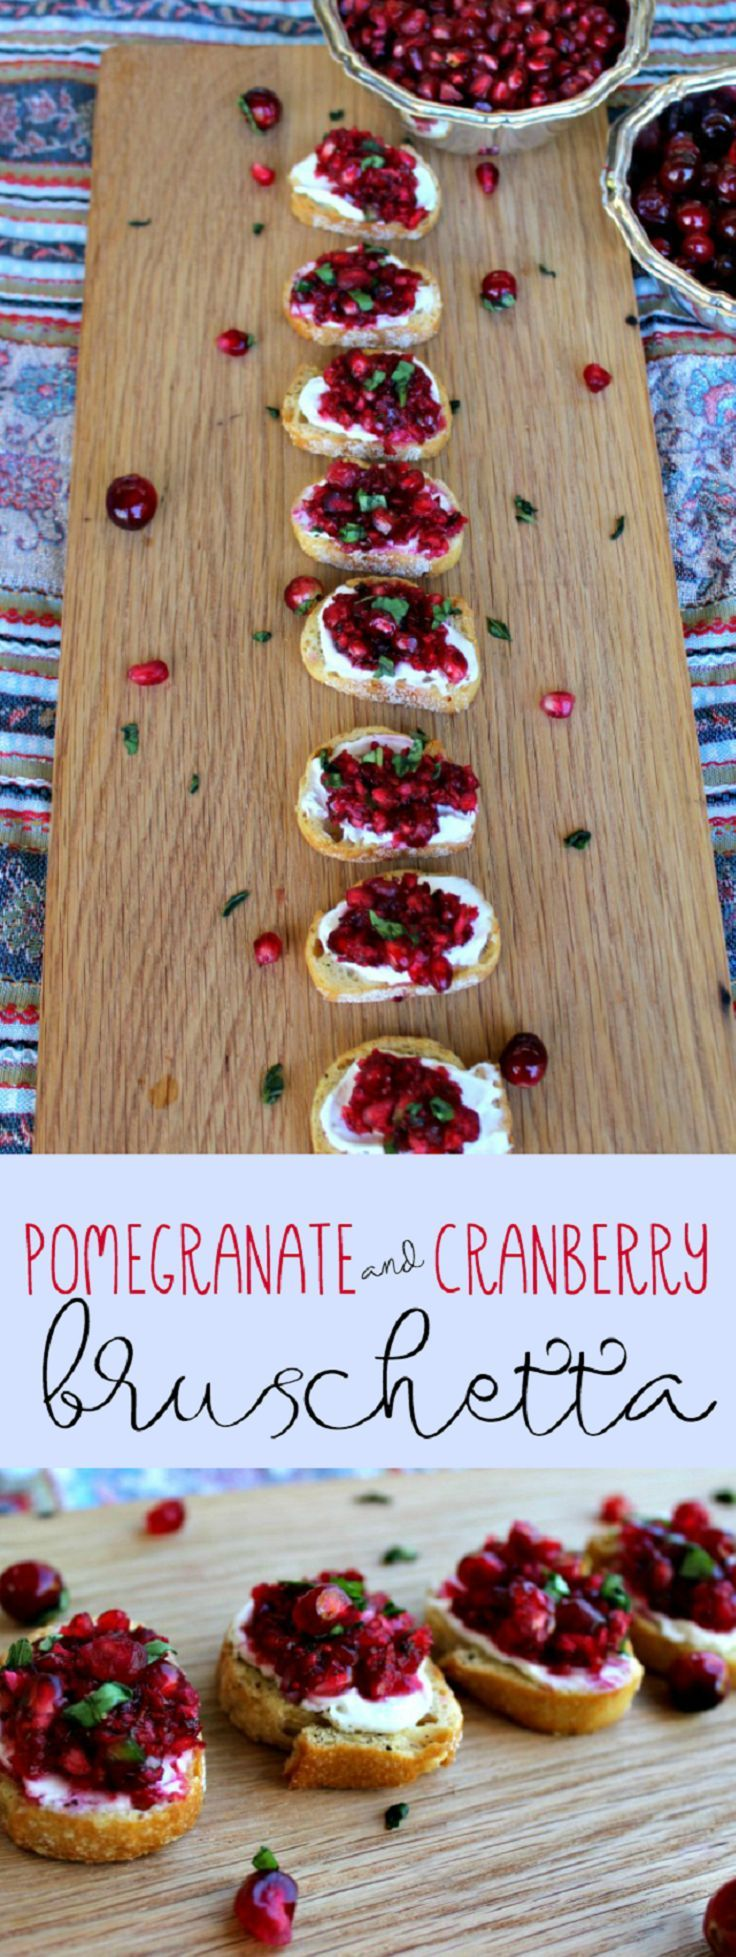 Pomegranate and Cranberry Bruschetta - 18 Welcoming Thanksgiving Appetizers that Will Accomplish Your Dinner Table #thanksgivingappetizersideas